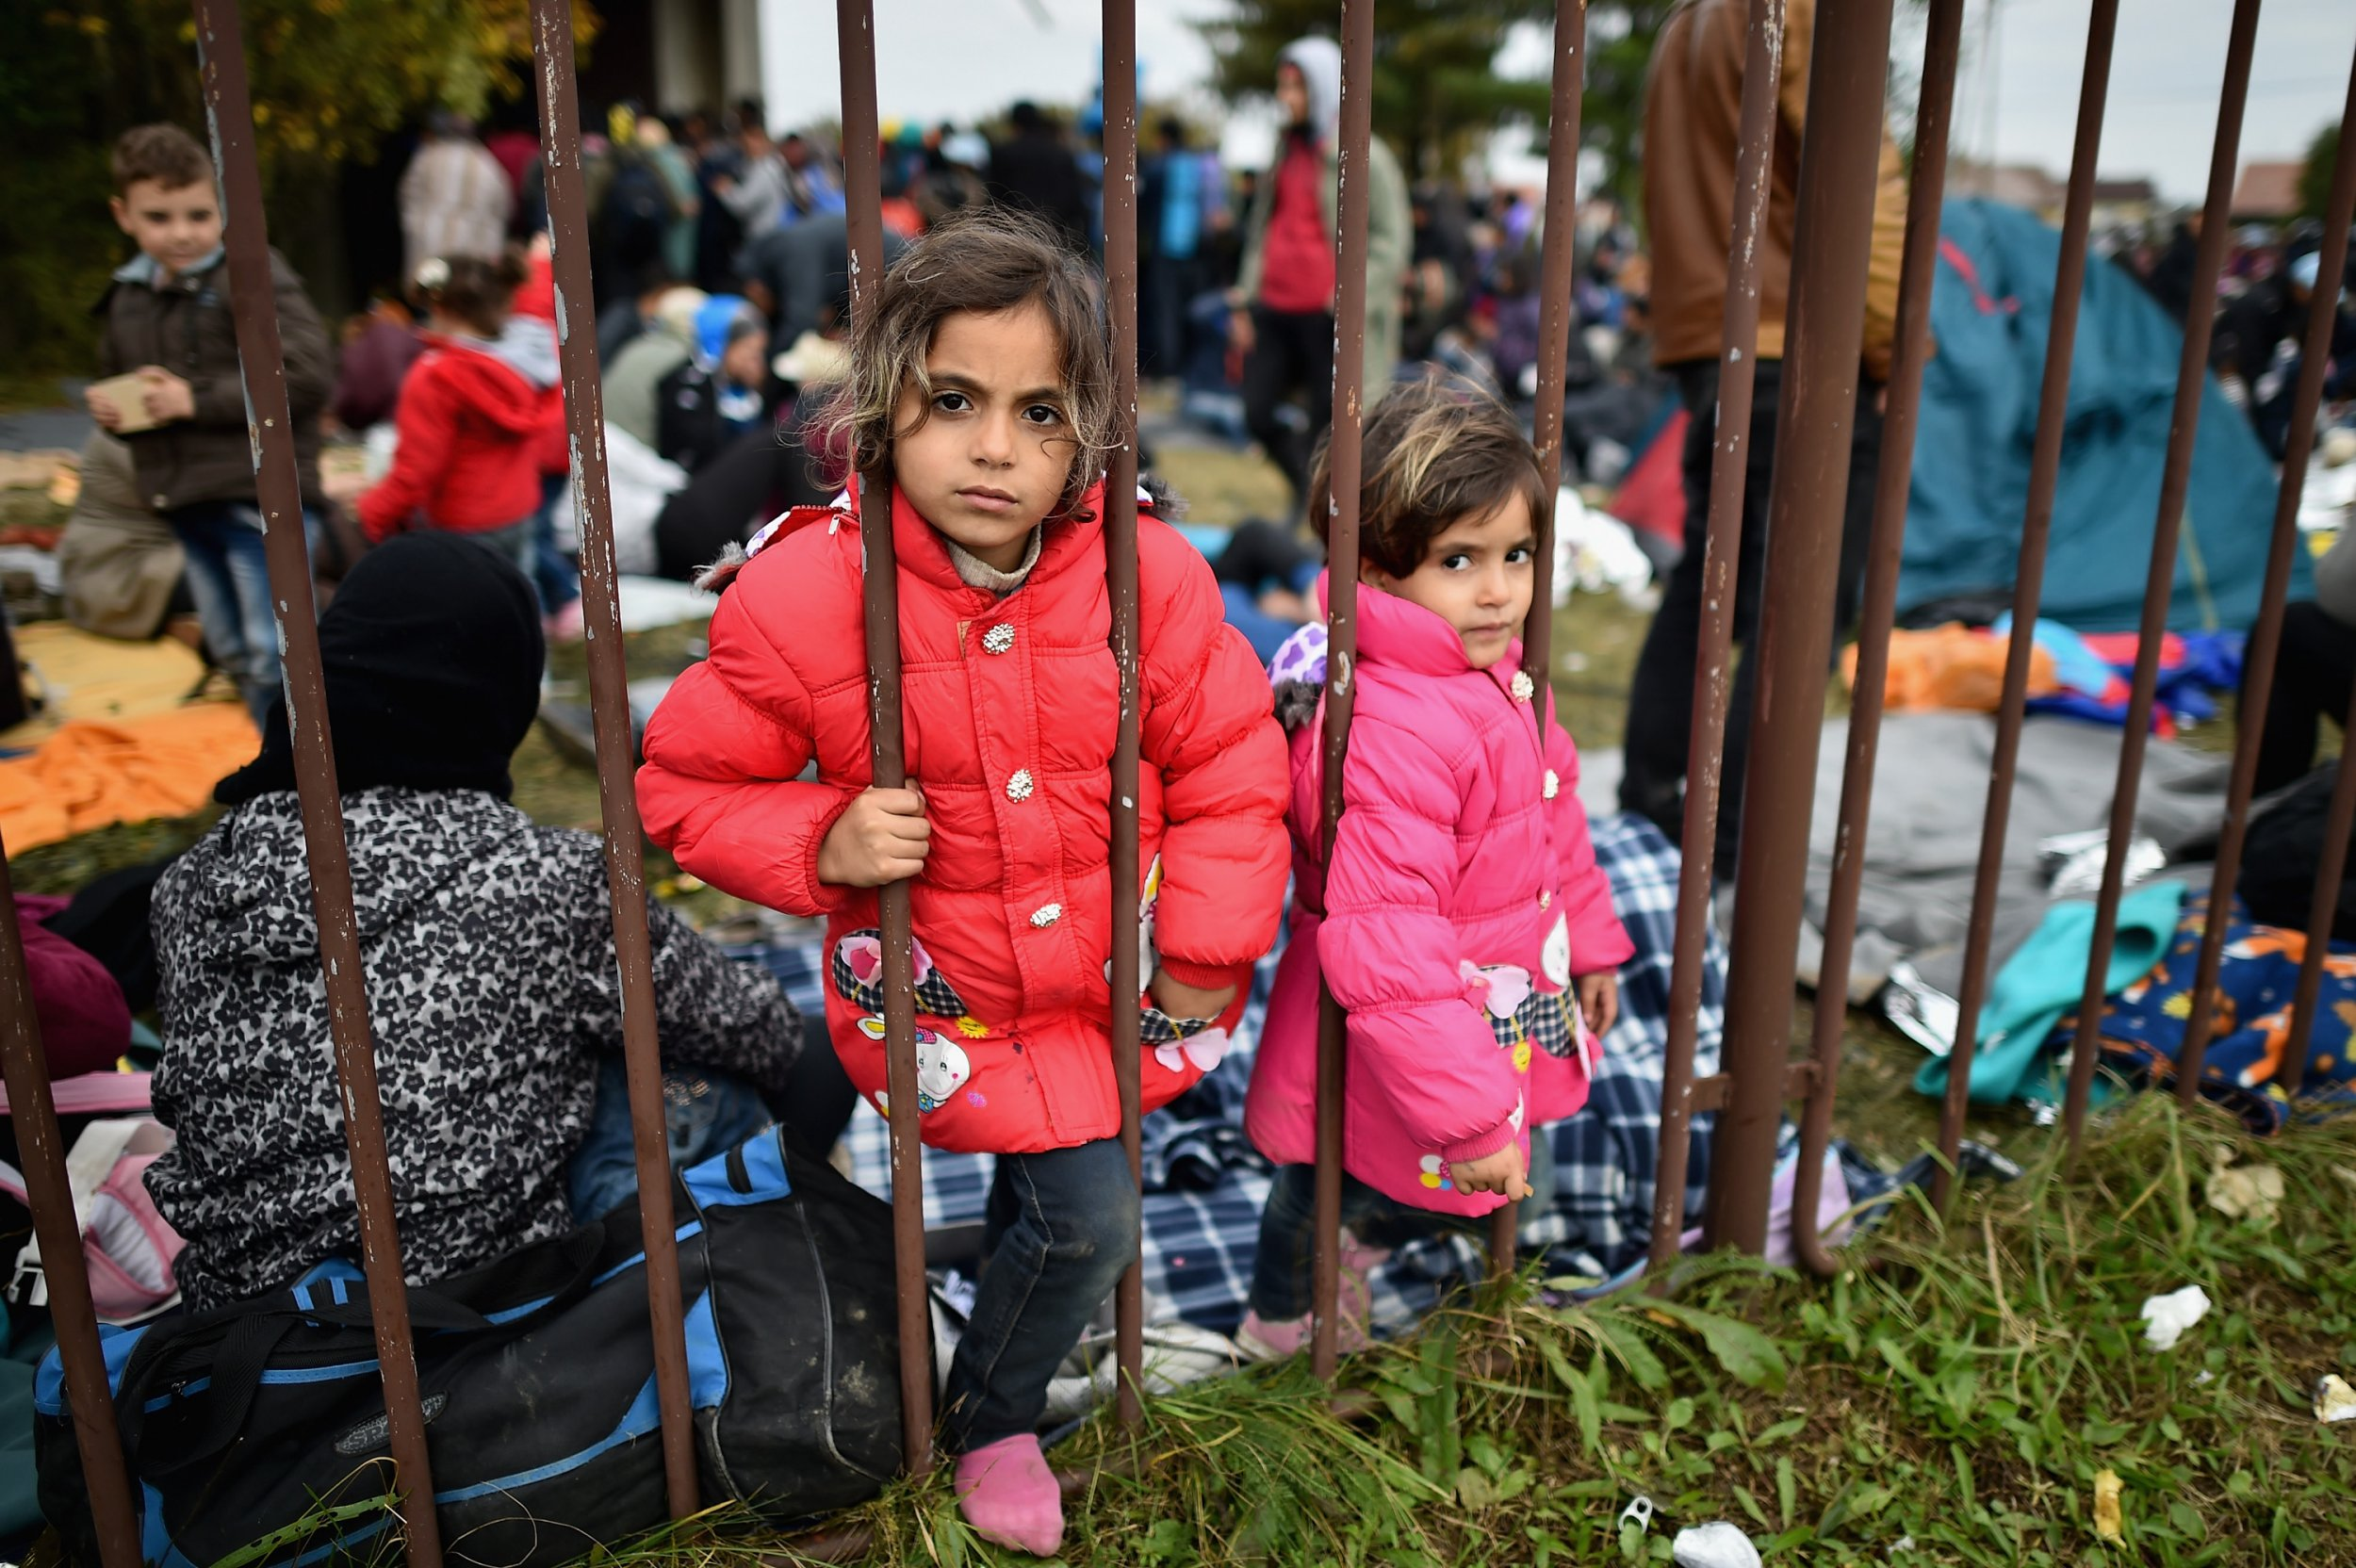 DOBOVA, SLOVENIA - OCTOBER 22: Migrant children look through a metal fence as they rest at a temporary holding area after being escorted by police from the Croatian and Slovenia border October 22, 2015 in Dobova, Slovenia. Thousands of migrants marched across the border from Croatia into Slovenia as authorities intensify their efforts to attempt to cope with a human tide unseen in Europe since World War II. (Photo by Jeff J Mitchell/Getty Images)